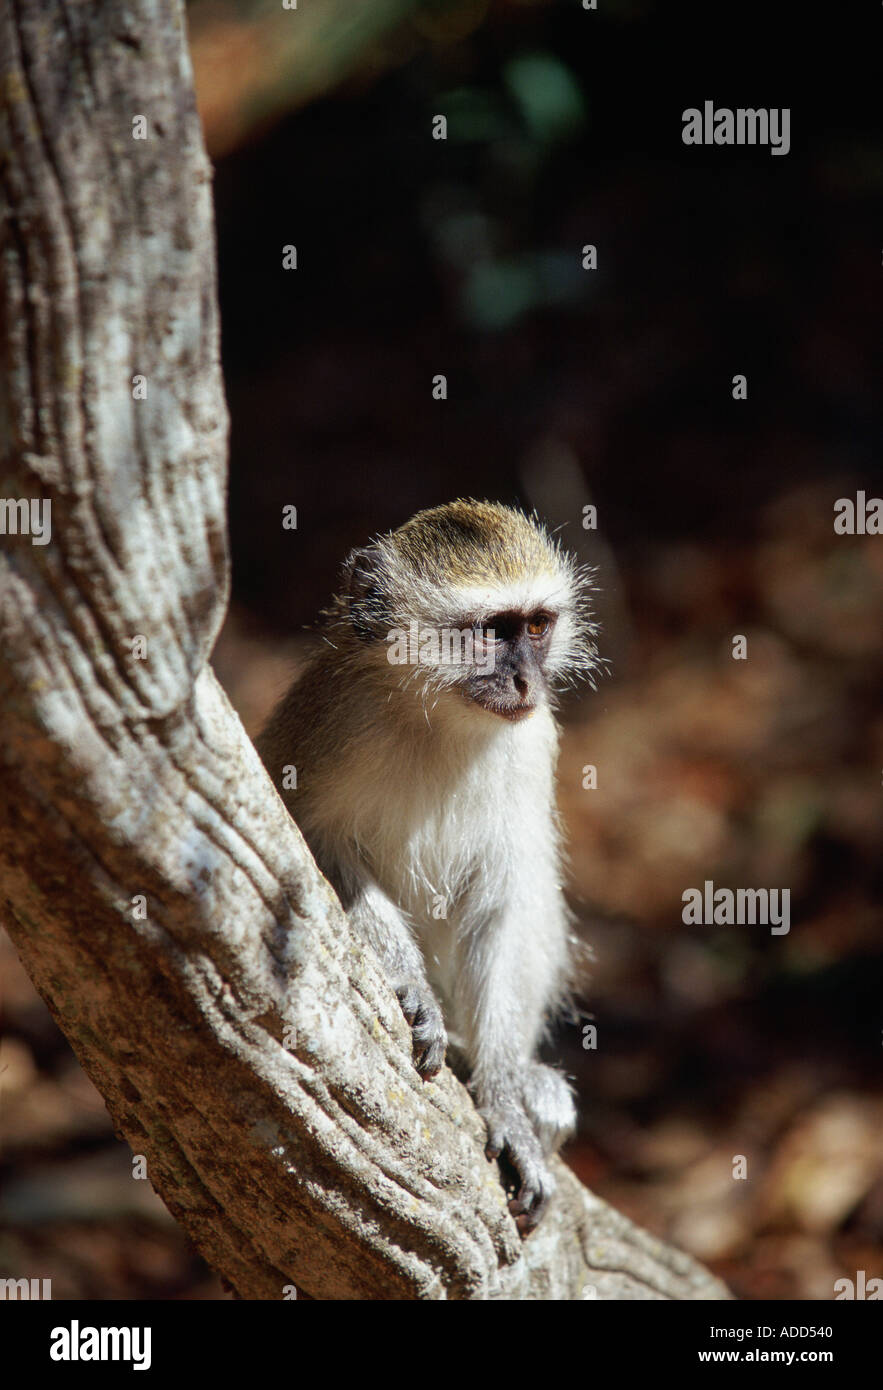 Young vervet monkey on a tree branch in Zimbabwe Africa - Stock Image